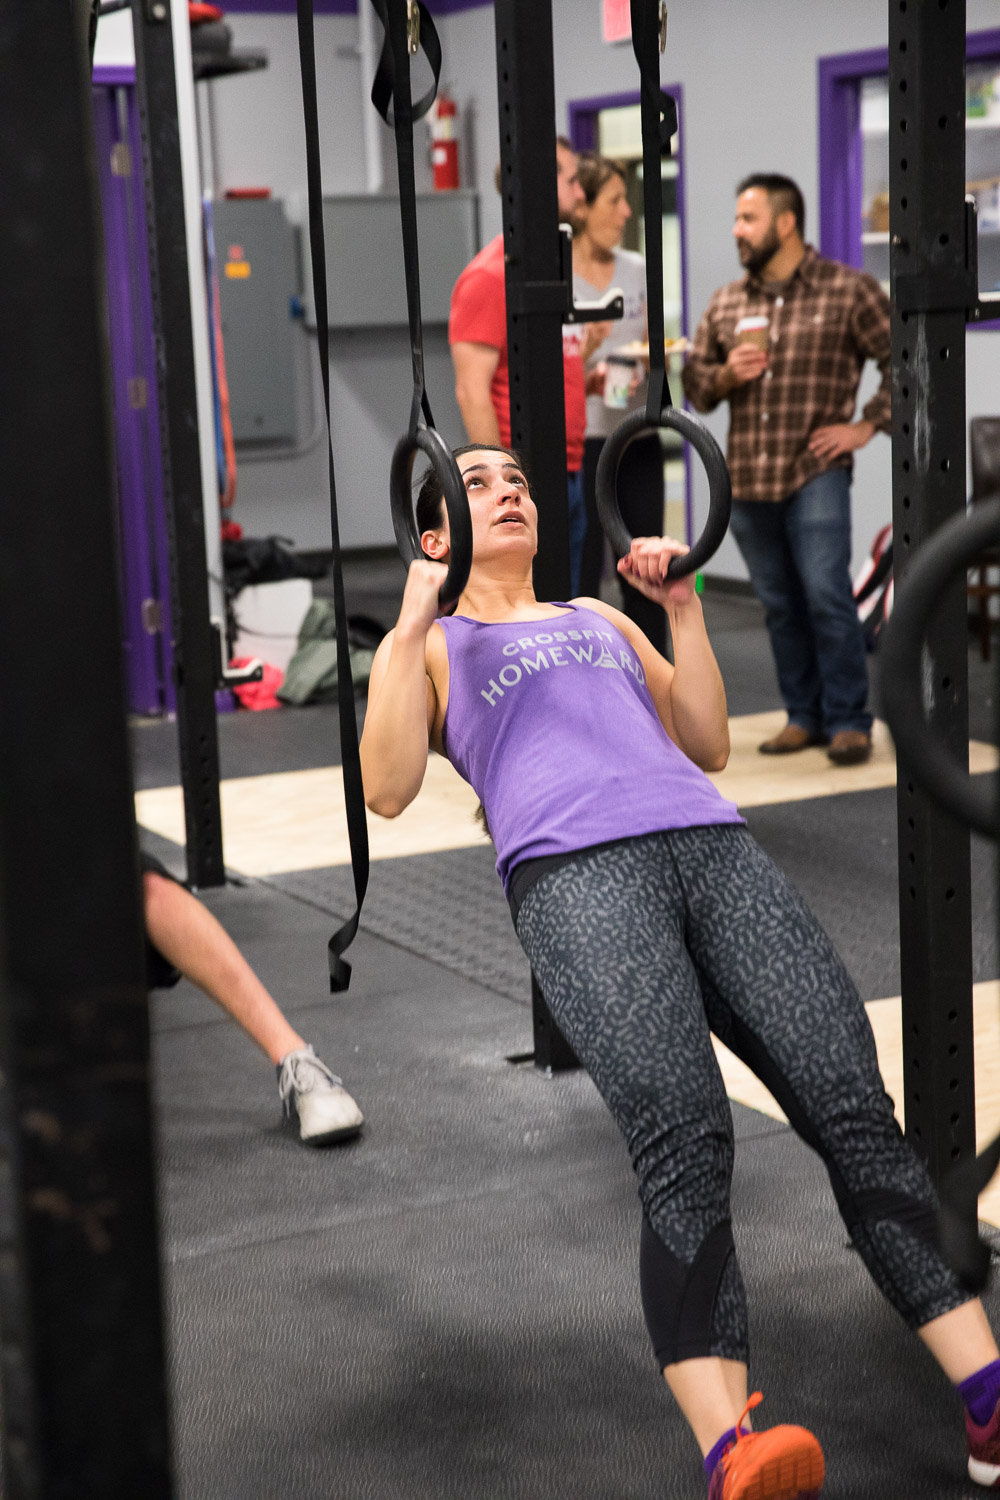 crossfit_homeward-44.jpg